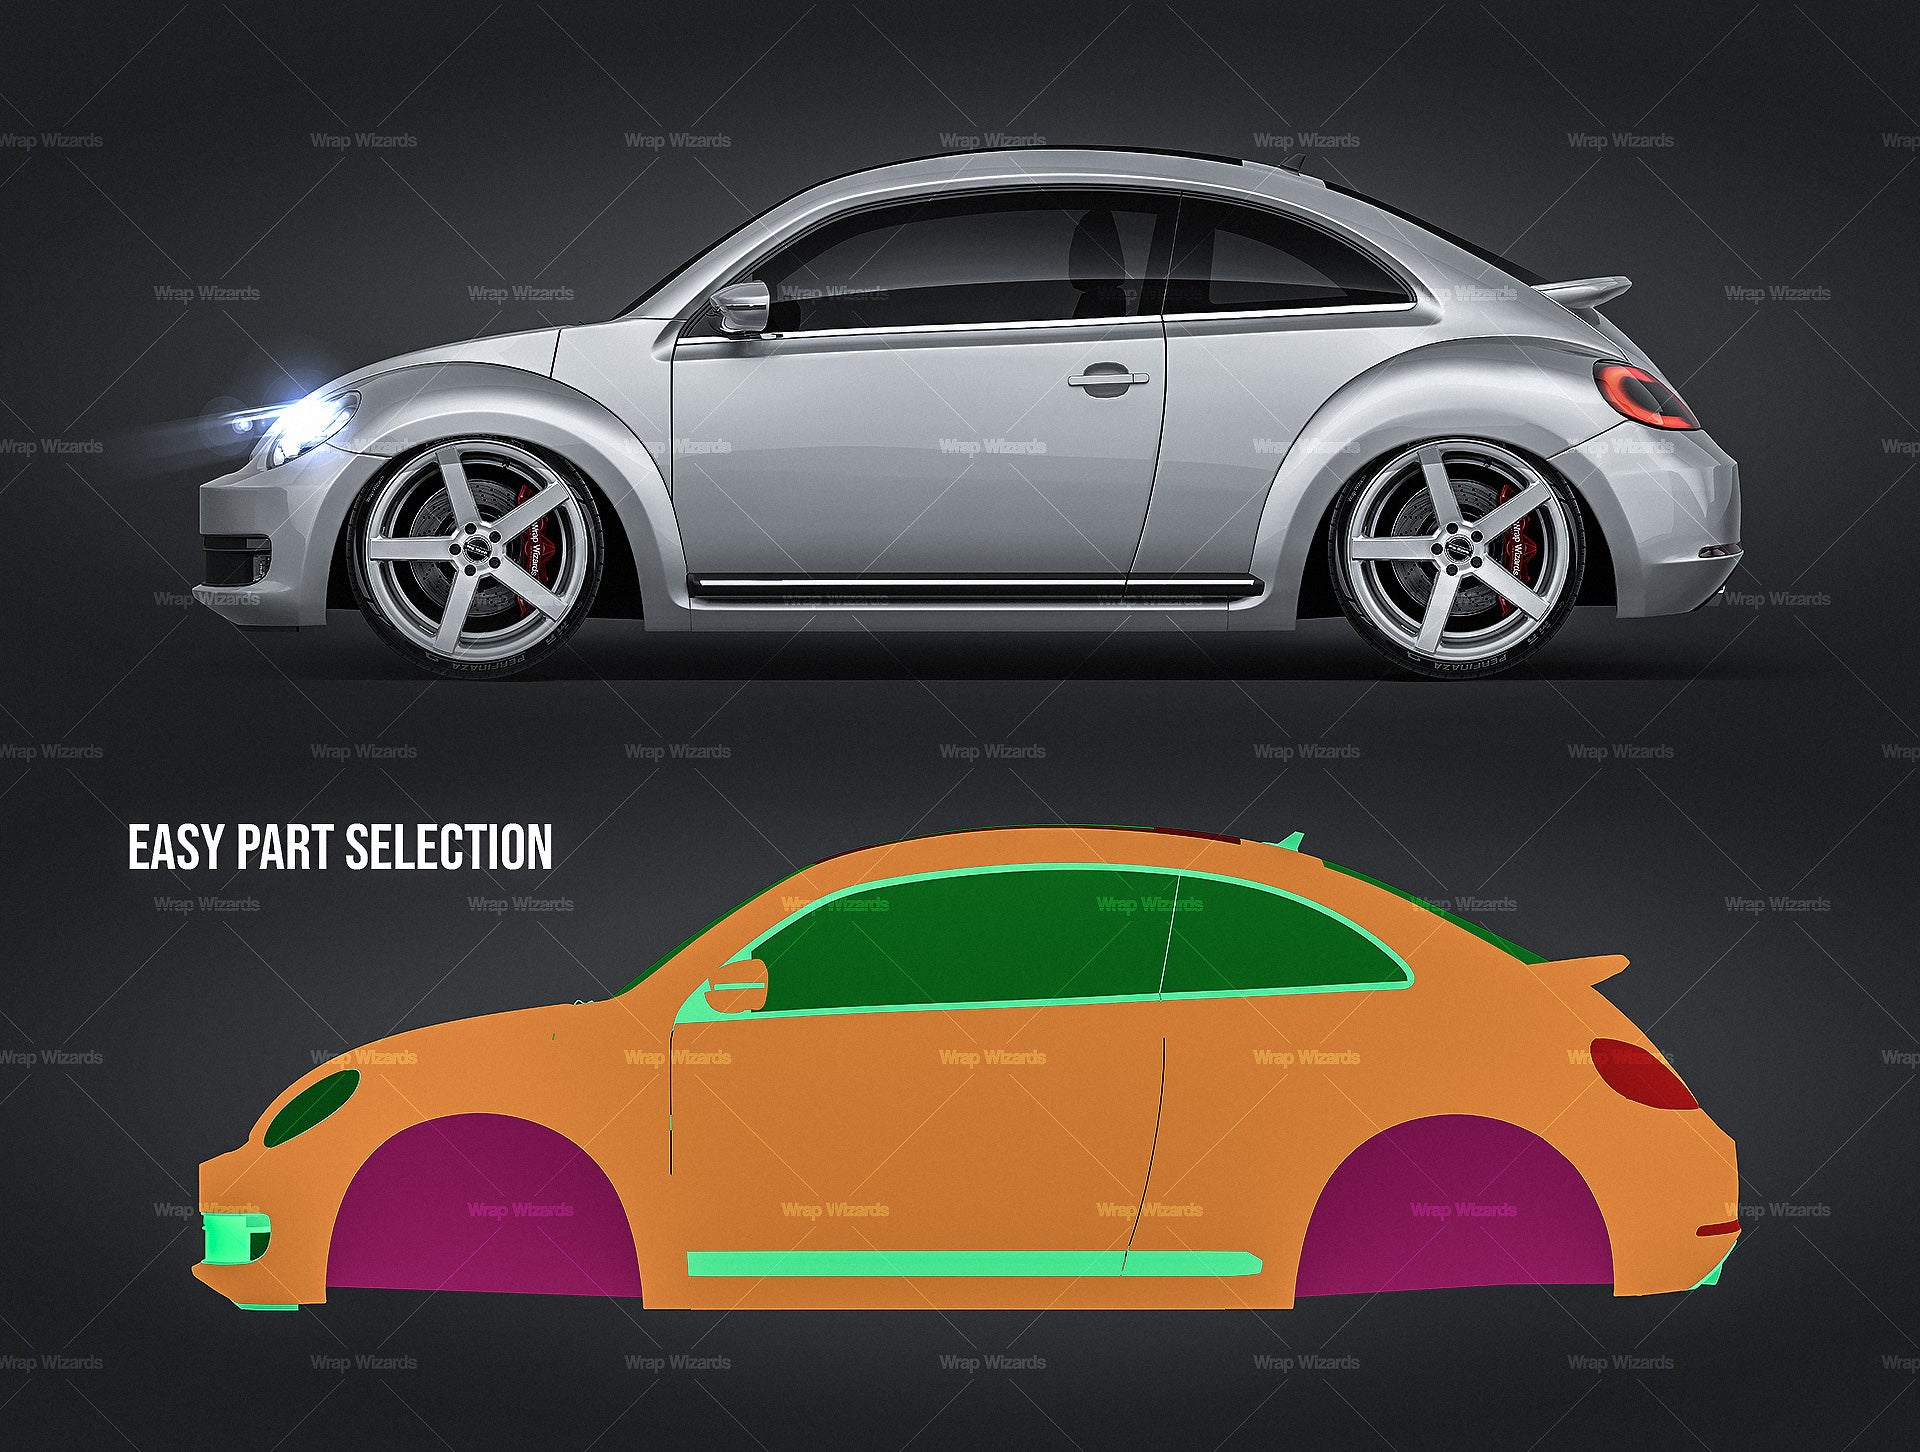 Volkswagen Beetle 2012 glossy finish - all sides Car Mockup Template.psd